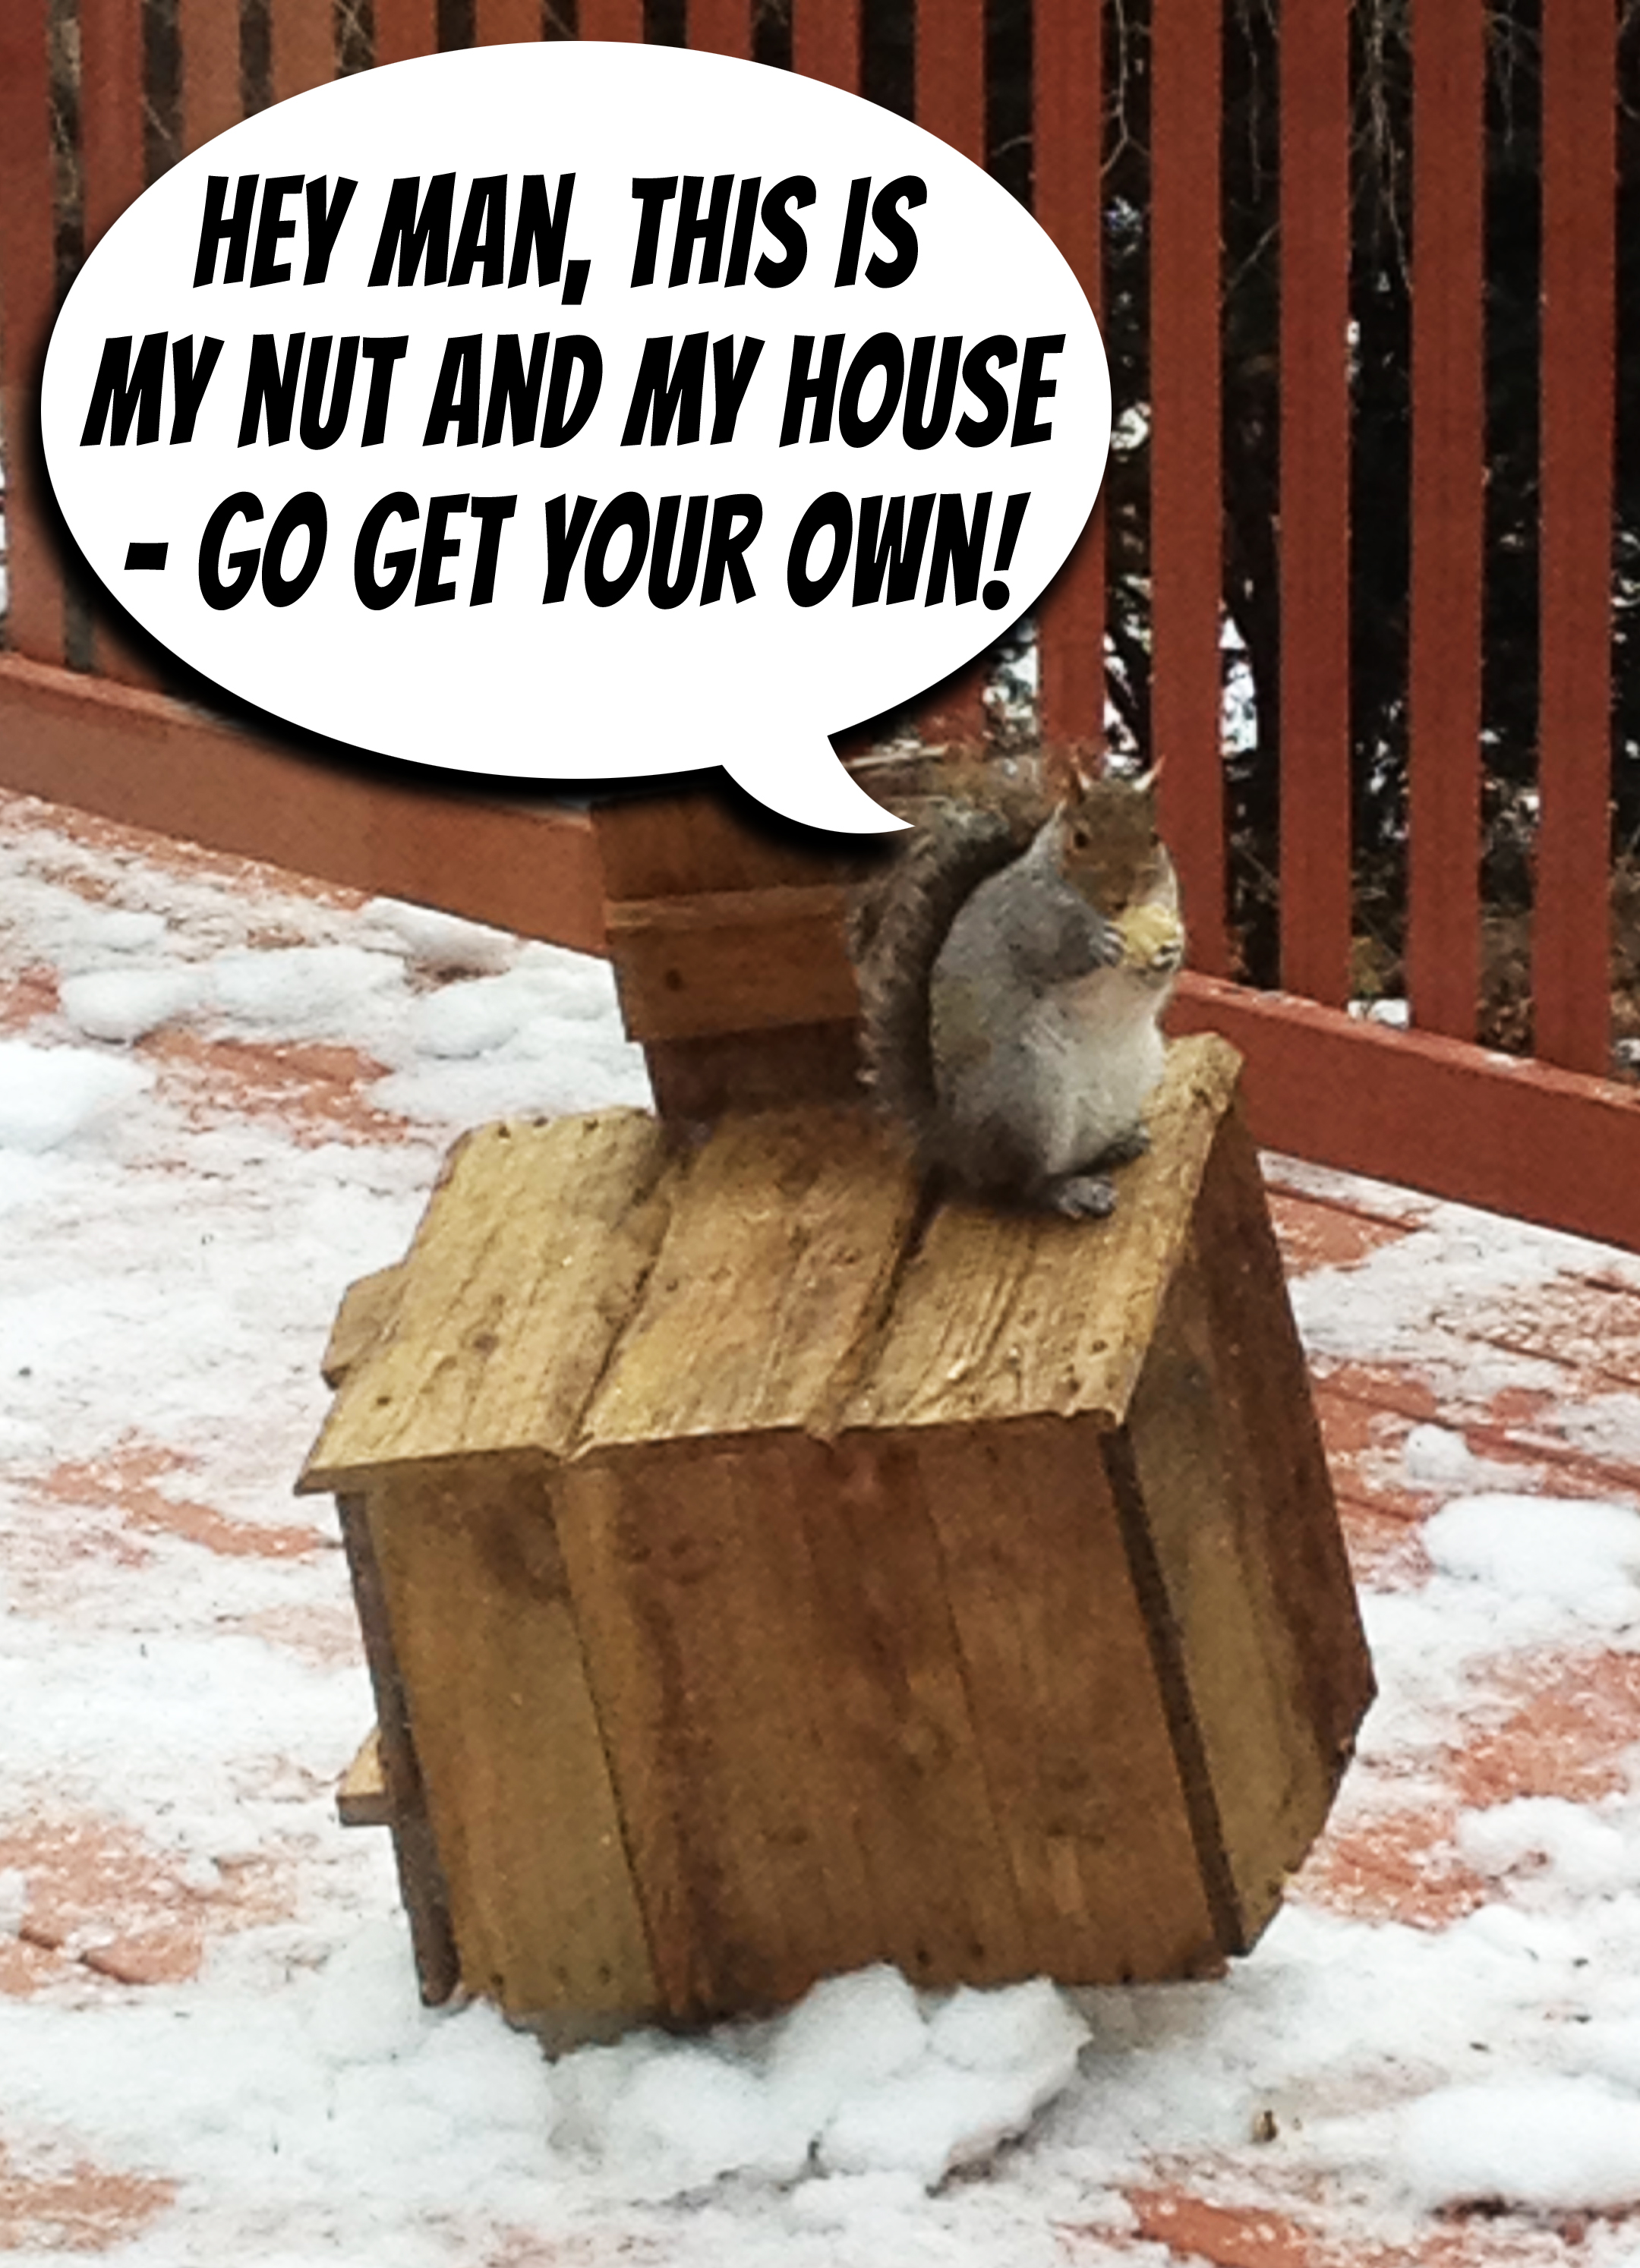 Things To Do With Old Pallets The Rustic Squirrel Hotel